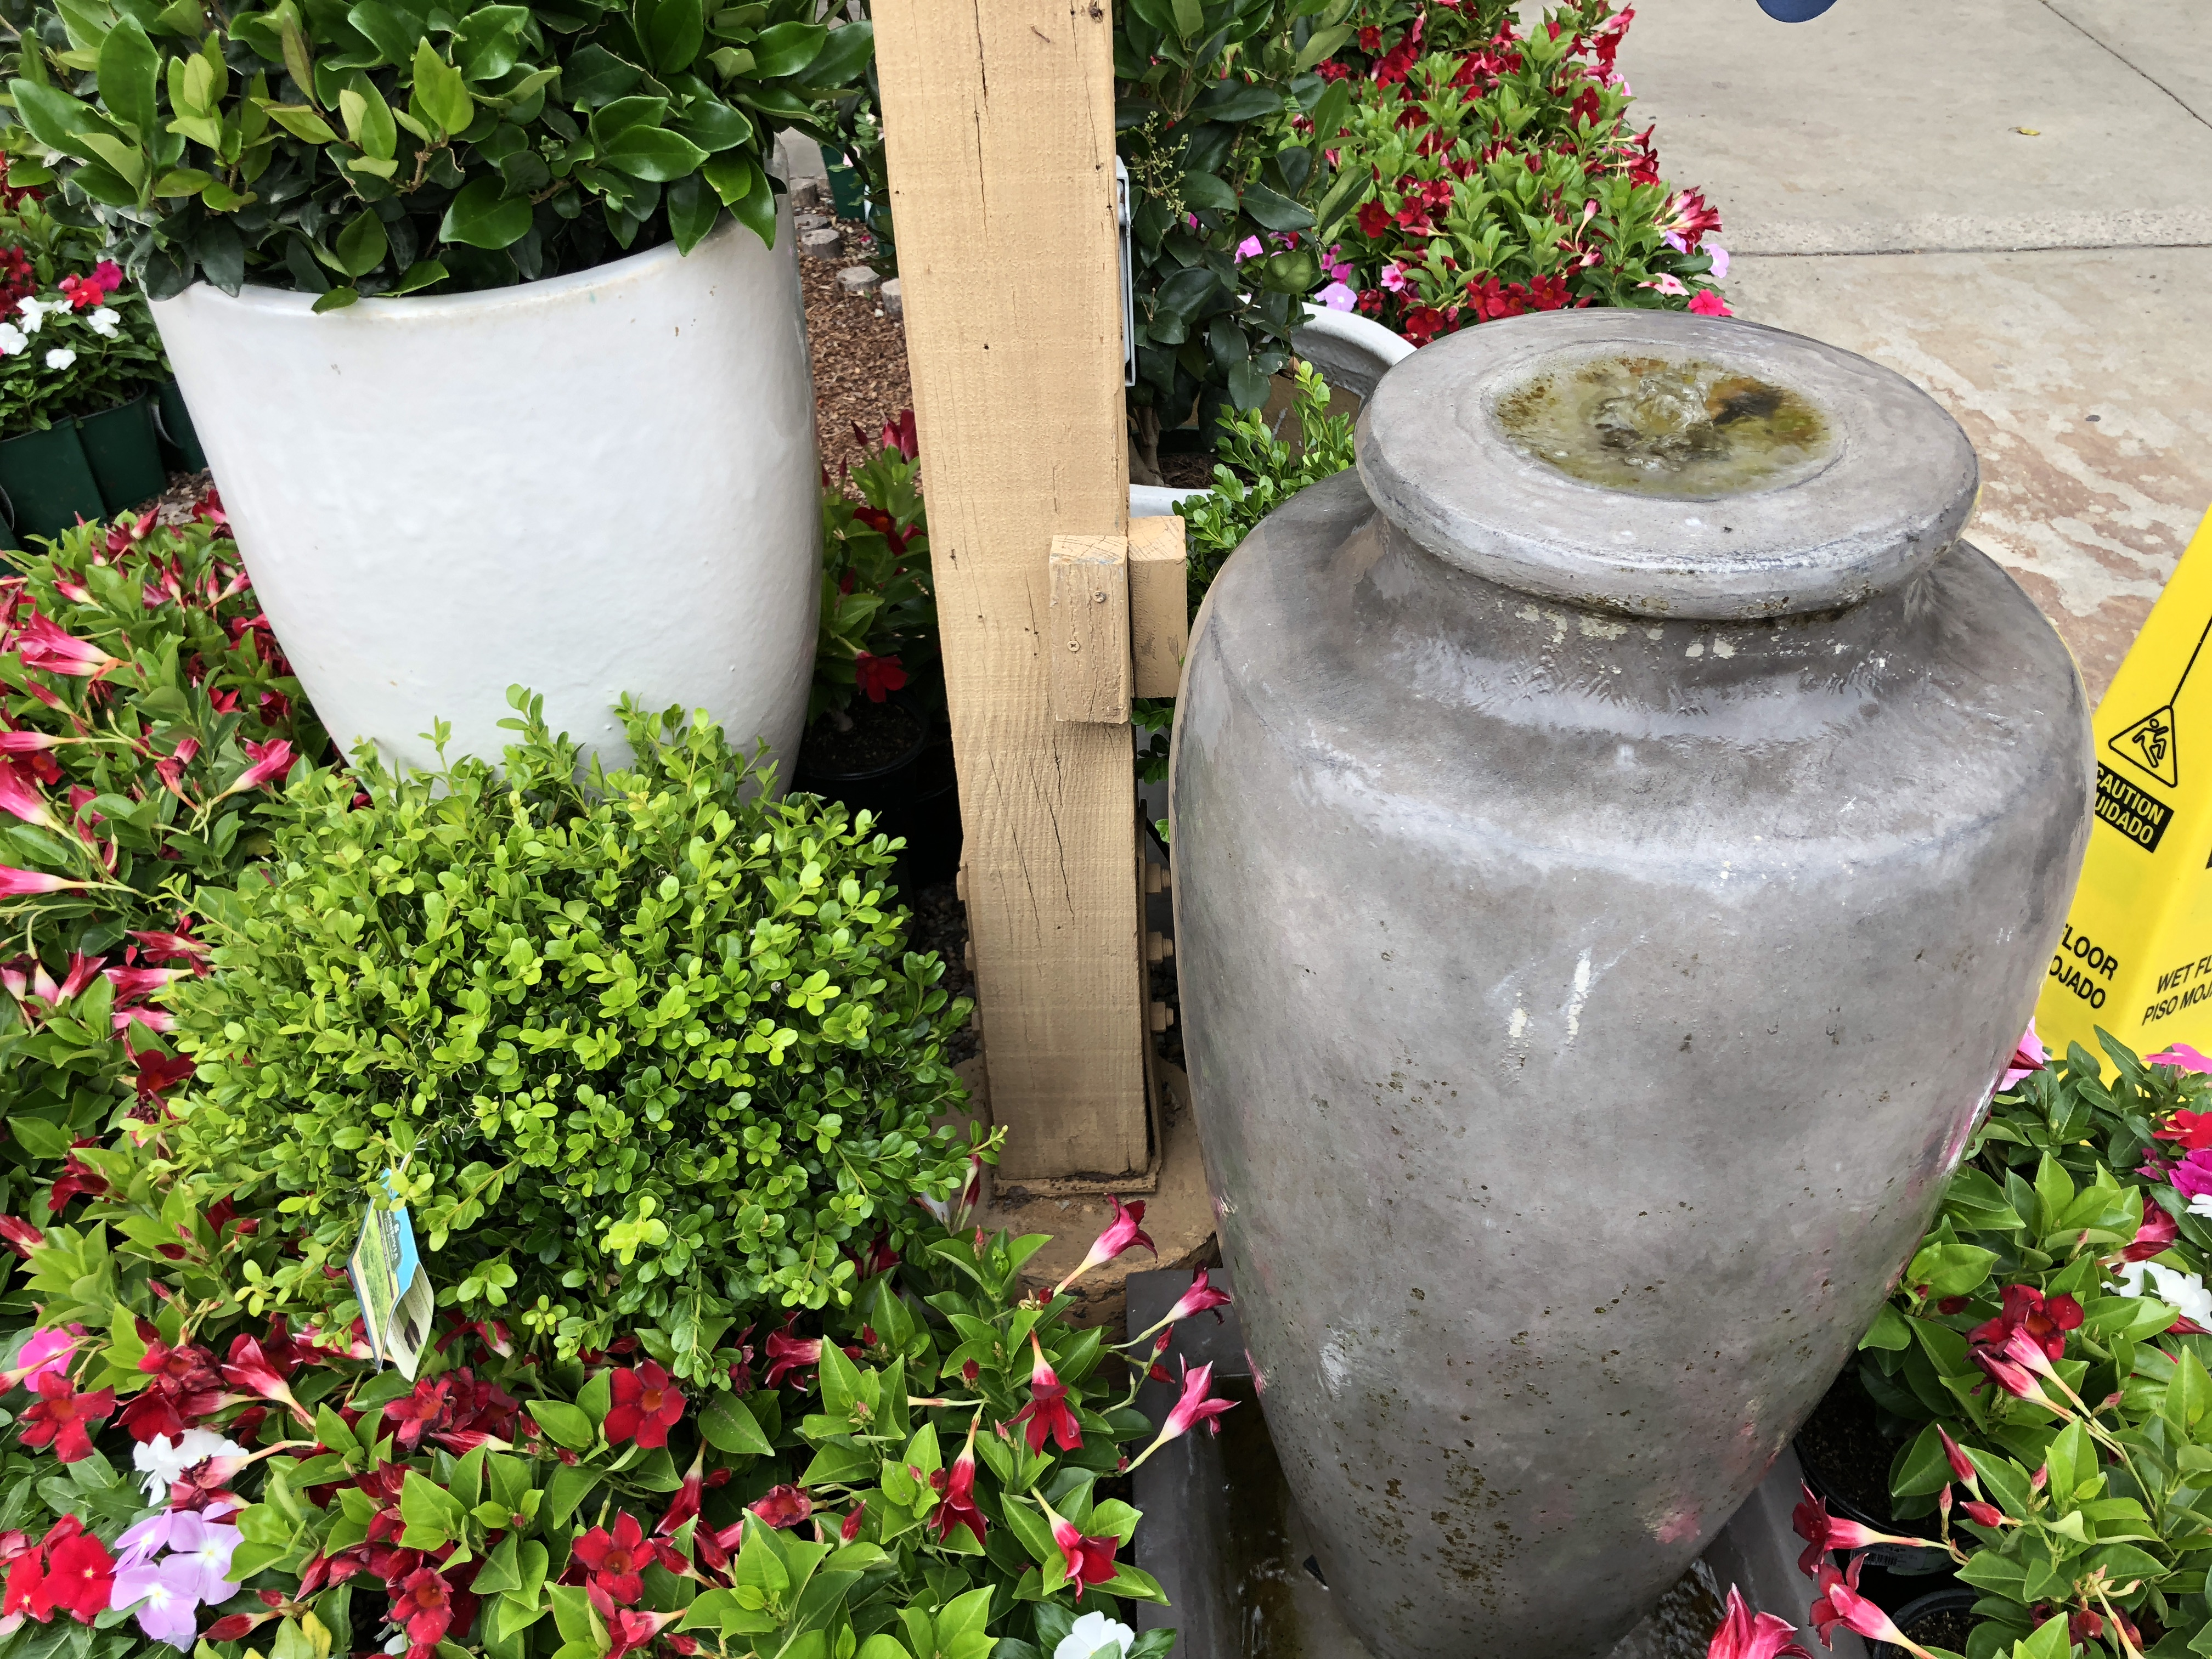 Armstrong's Garden Centers Newport Beach Water Fountain and Flower Arrangement